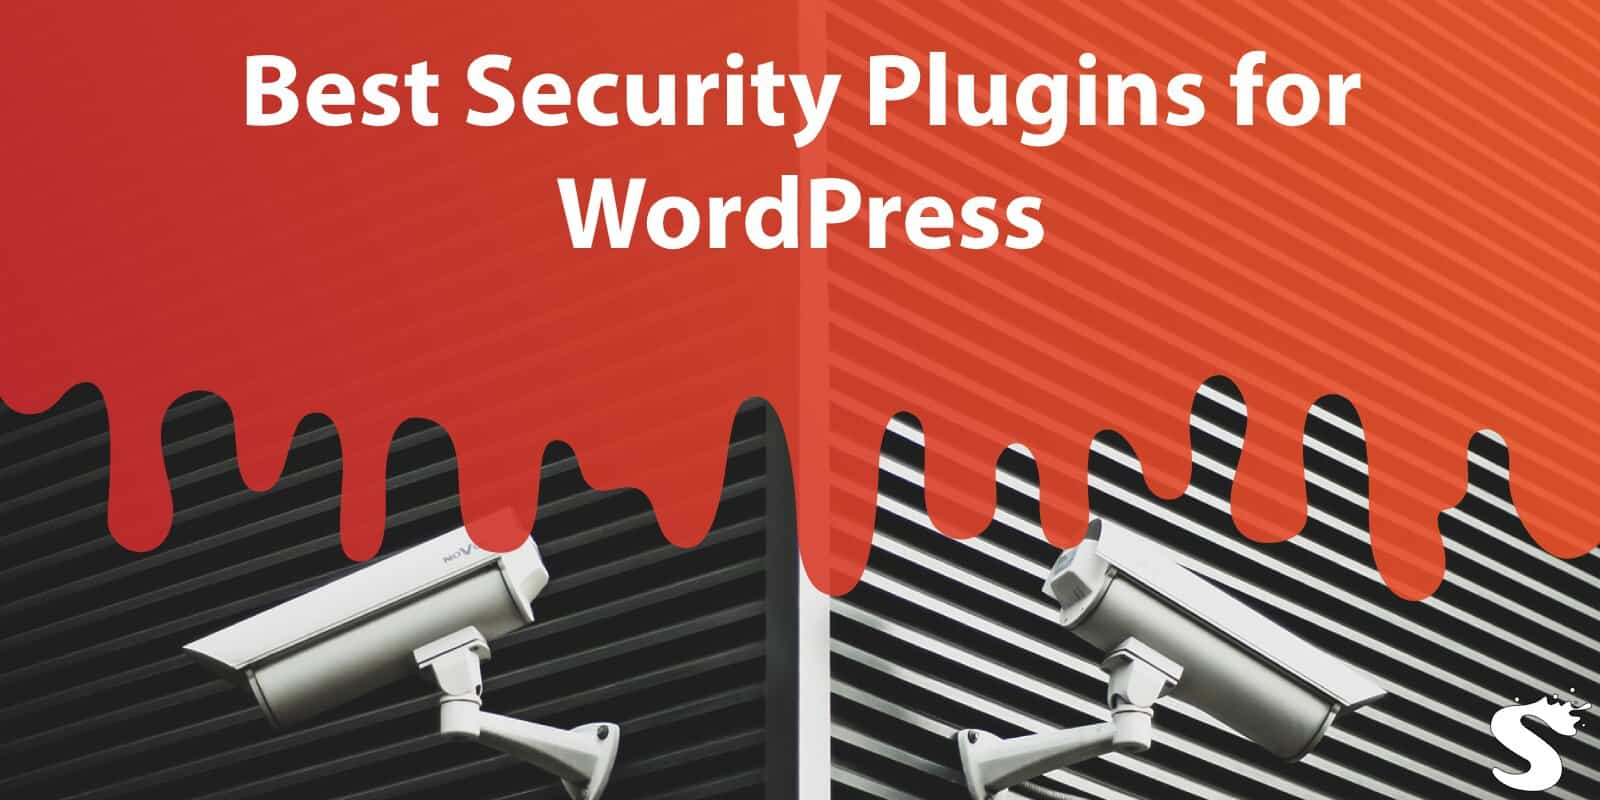 Best Security Plugins for Wordpress